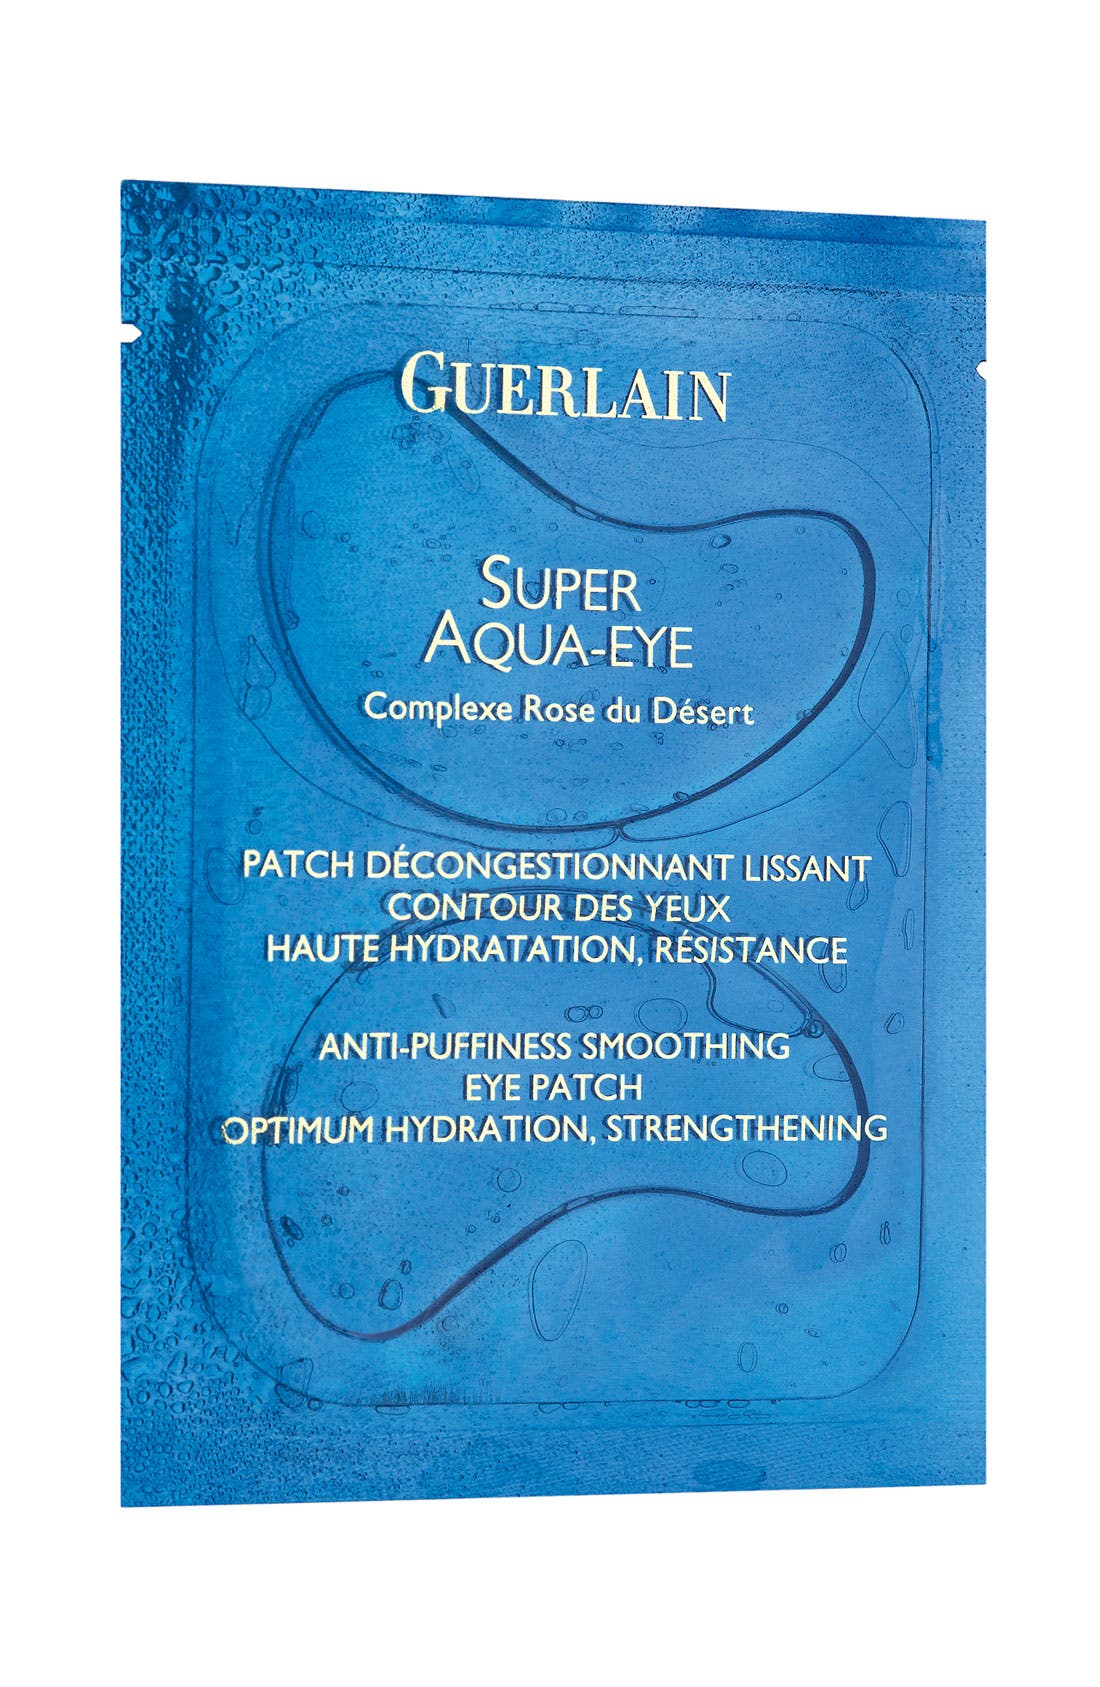 6-Count Super Aqua-Eye Anti-Puffiness Soothing Eye Patch,                             Main thumbnail 1, color,                             NO COLOR